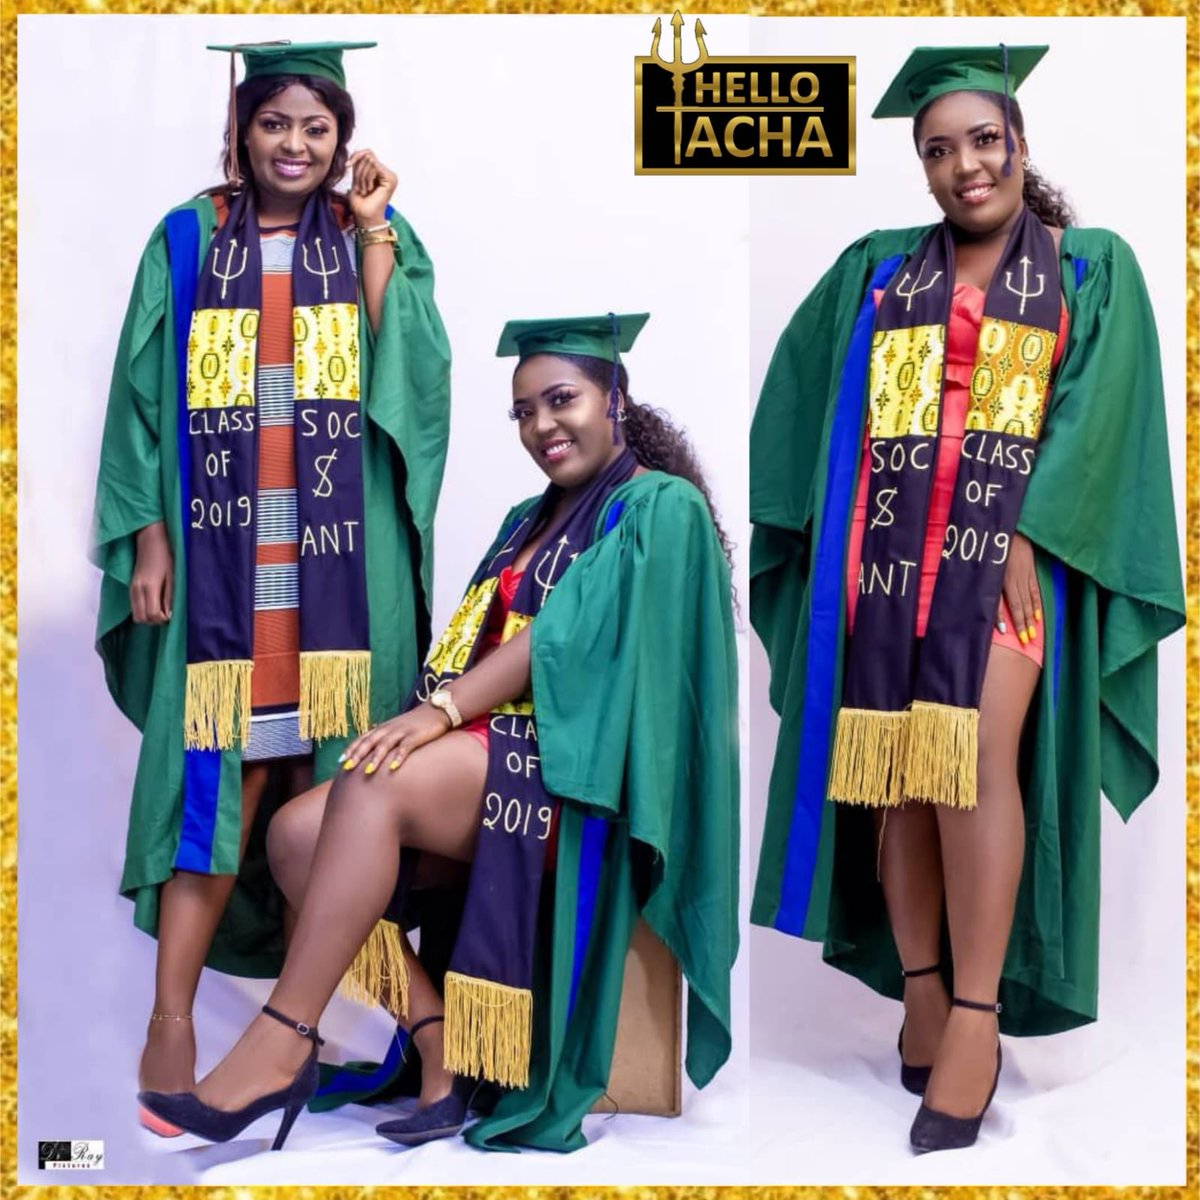 Say WHAT! Shout Out to the Latest Cameroonian Titans Graduates . Titans Keep Making US proud  #EverythingTacha <br>http://pic.twitter.com/aC7jNPNqyV